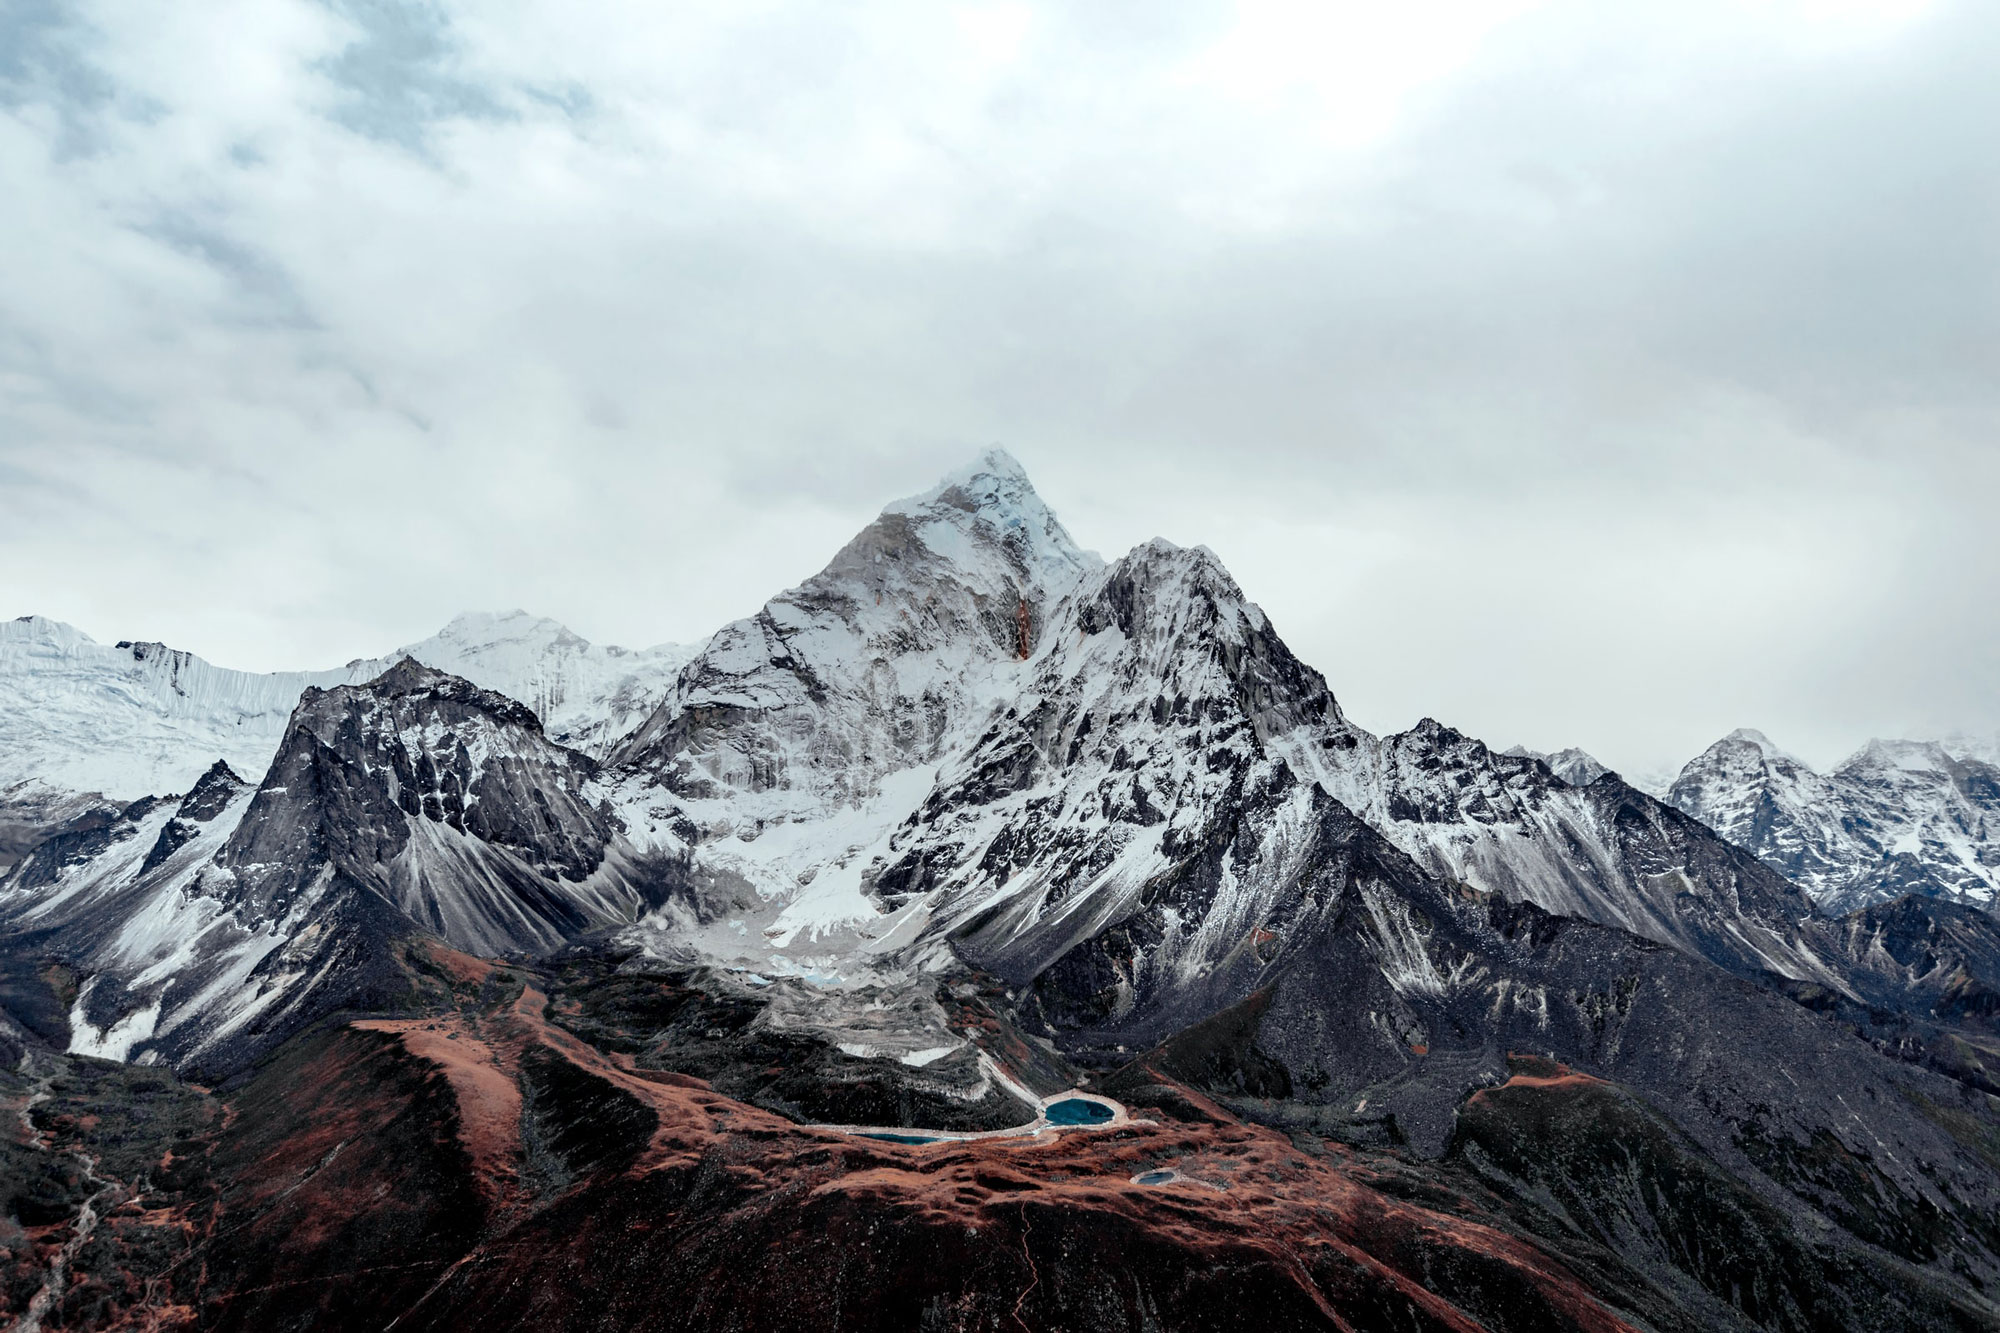 Dingboche in Nepal. Photo by Craig McKay.